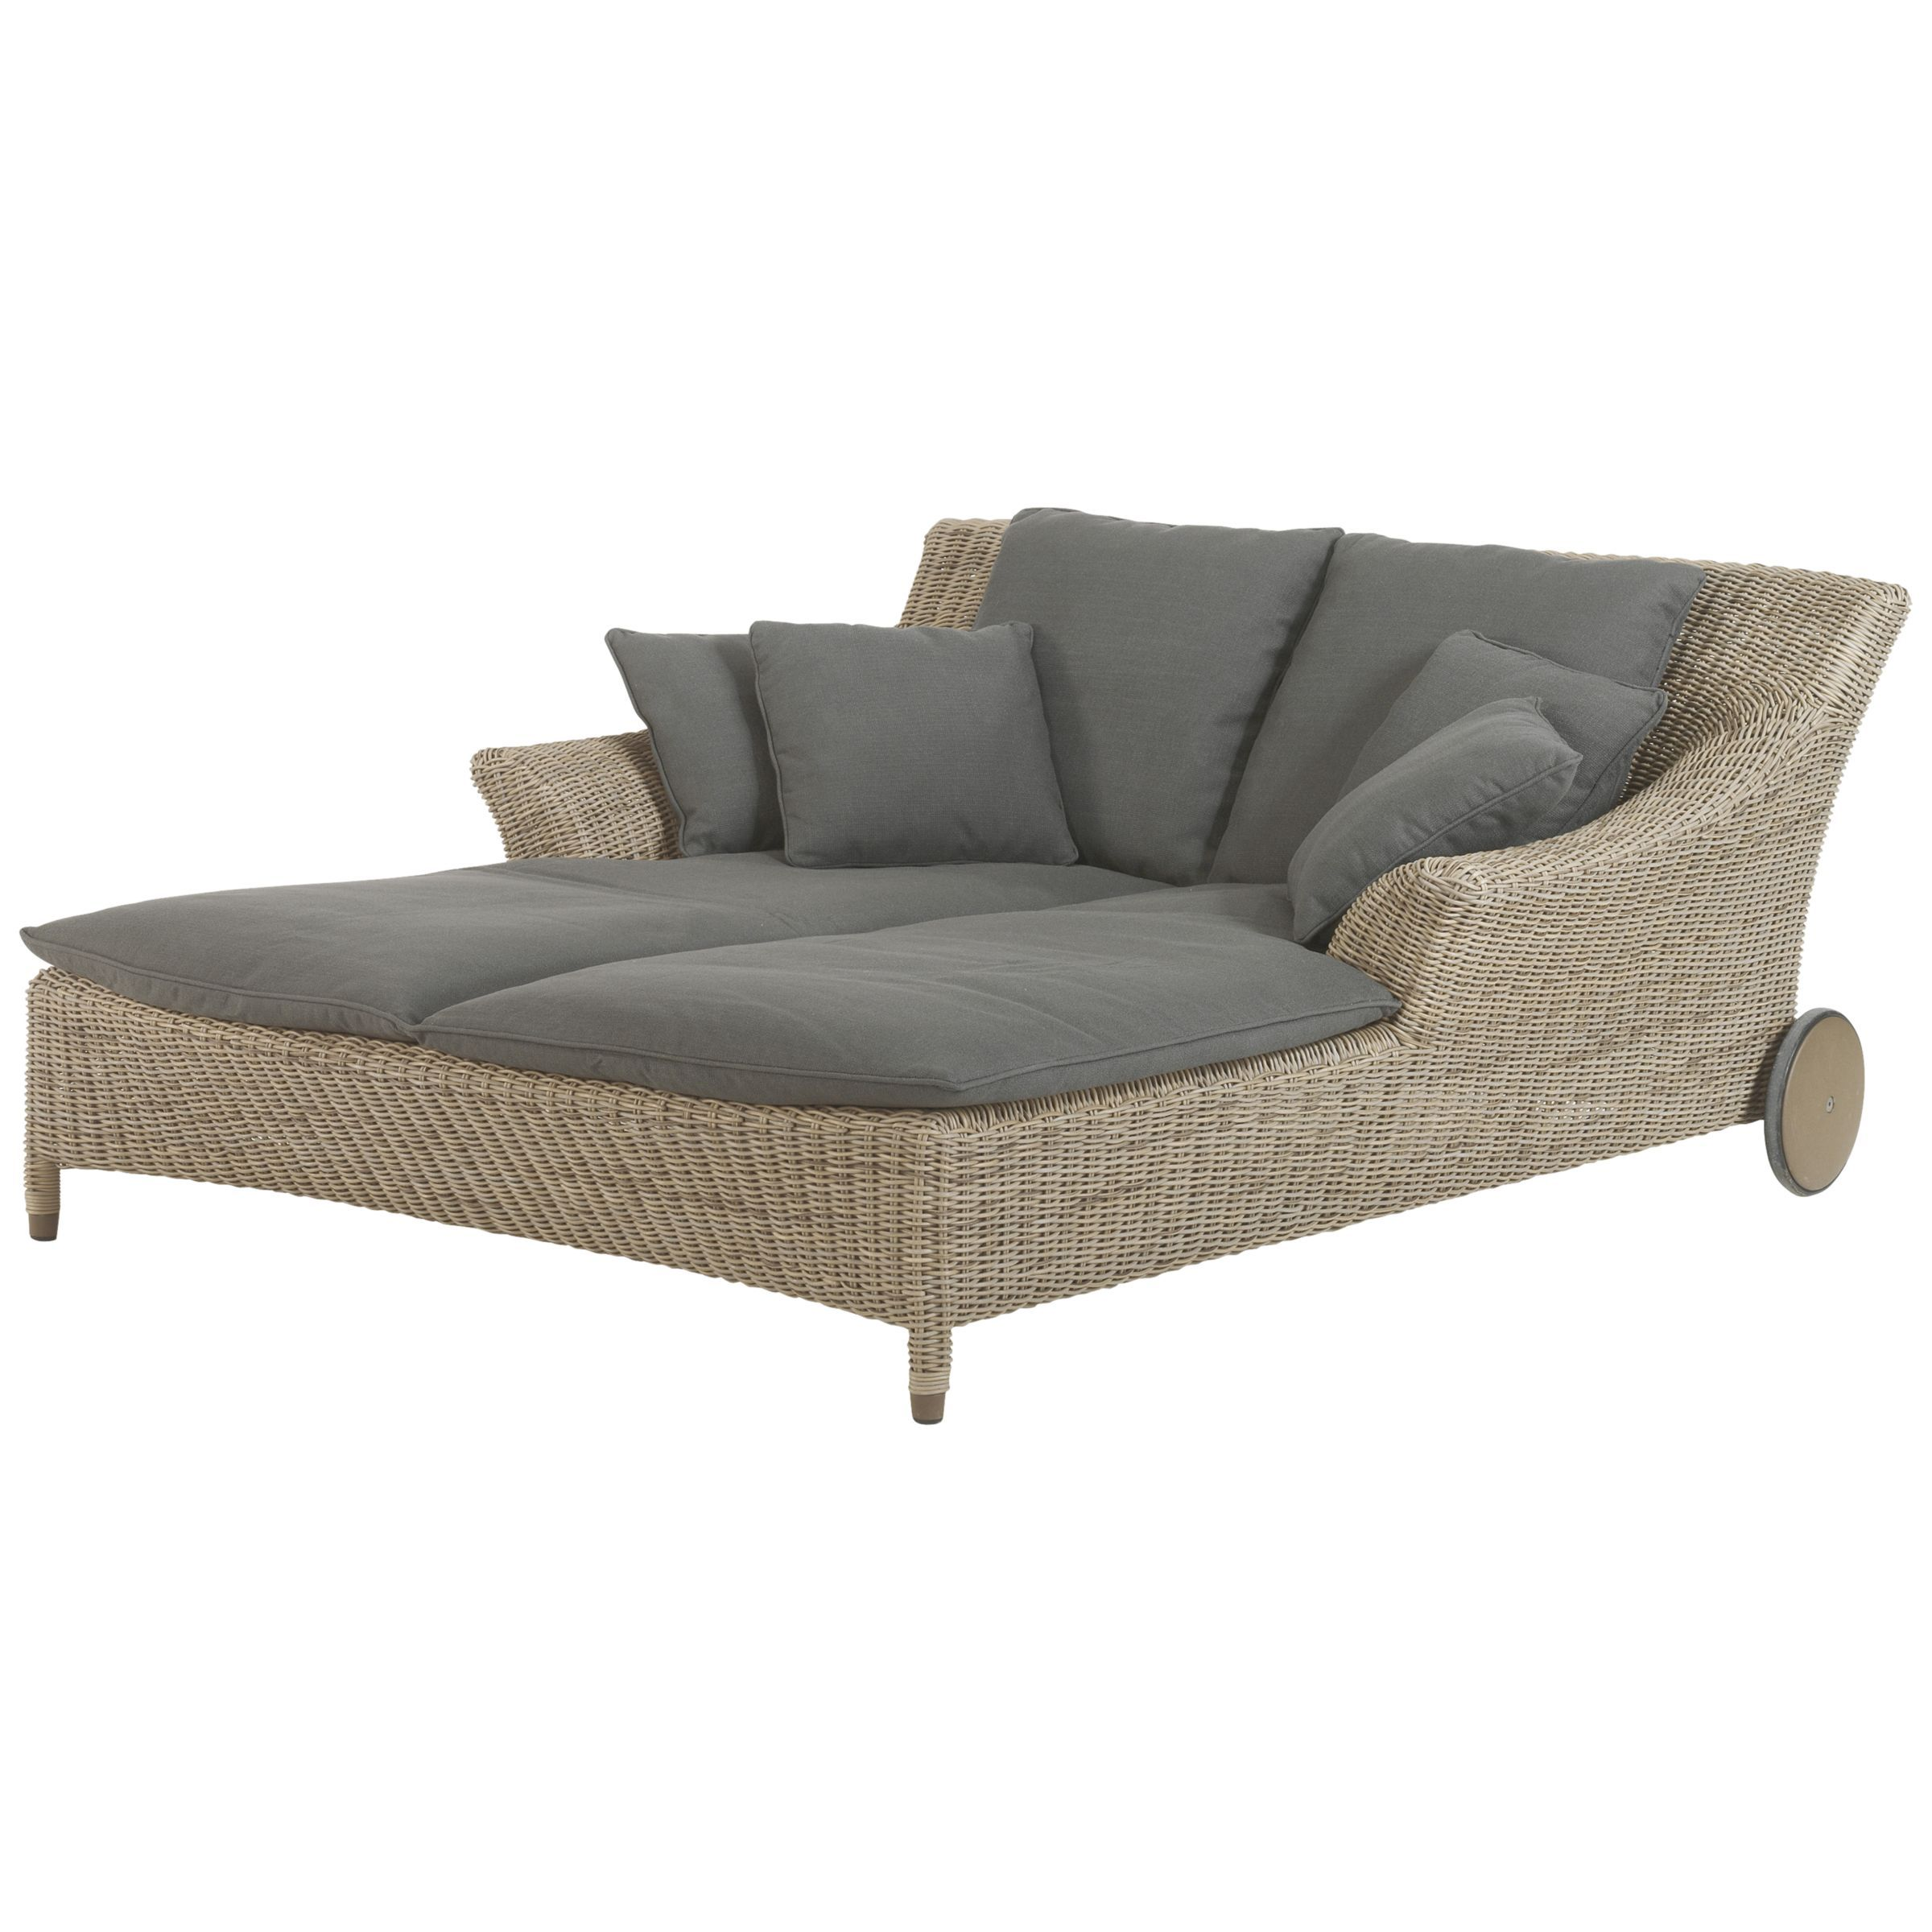 Best Garden Day Bed 10 Outdoor Daybeds For Ultimate Relaxation